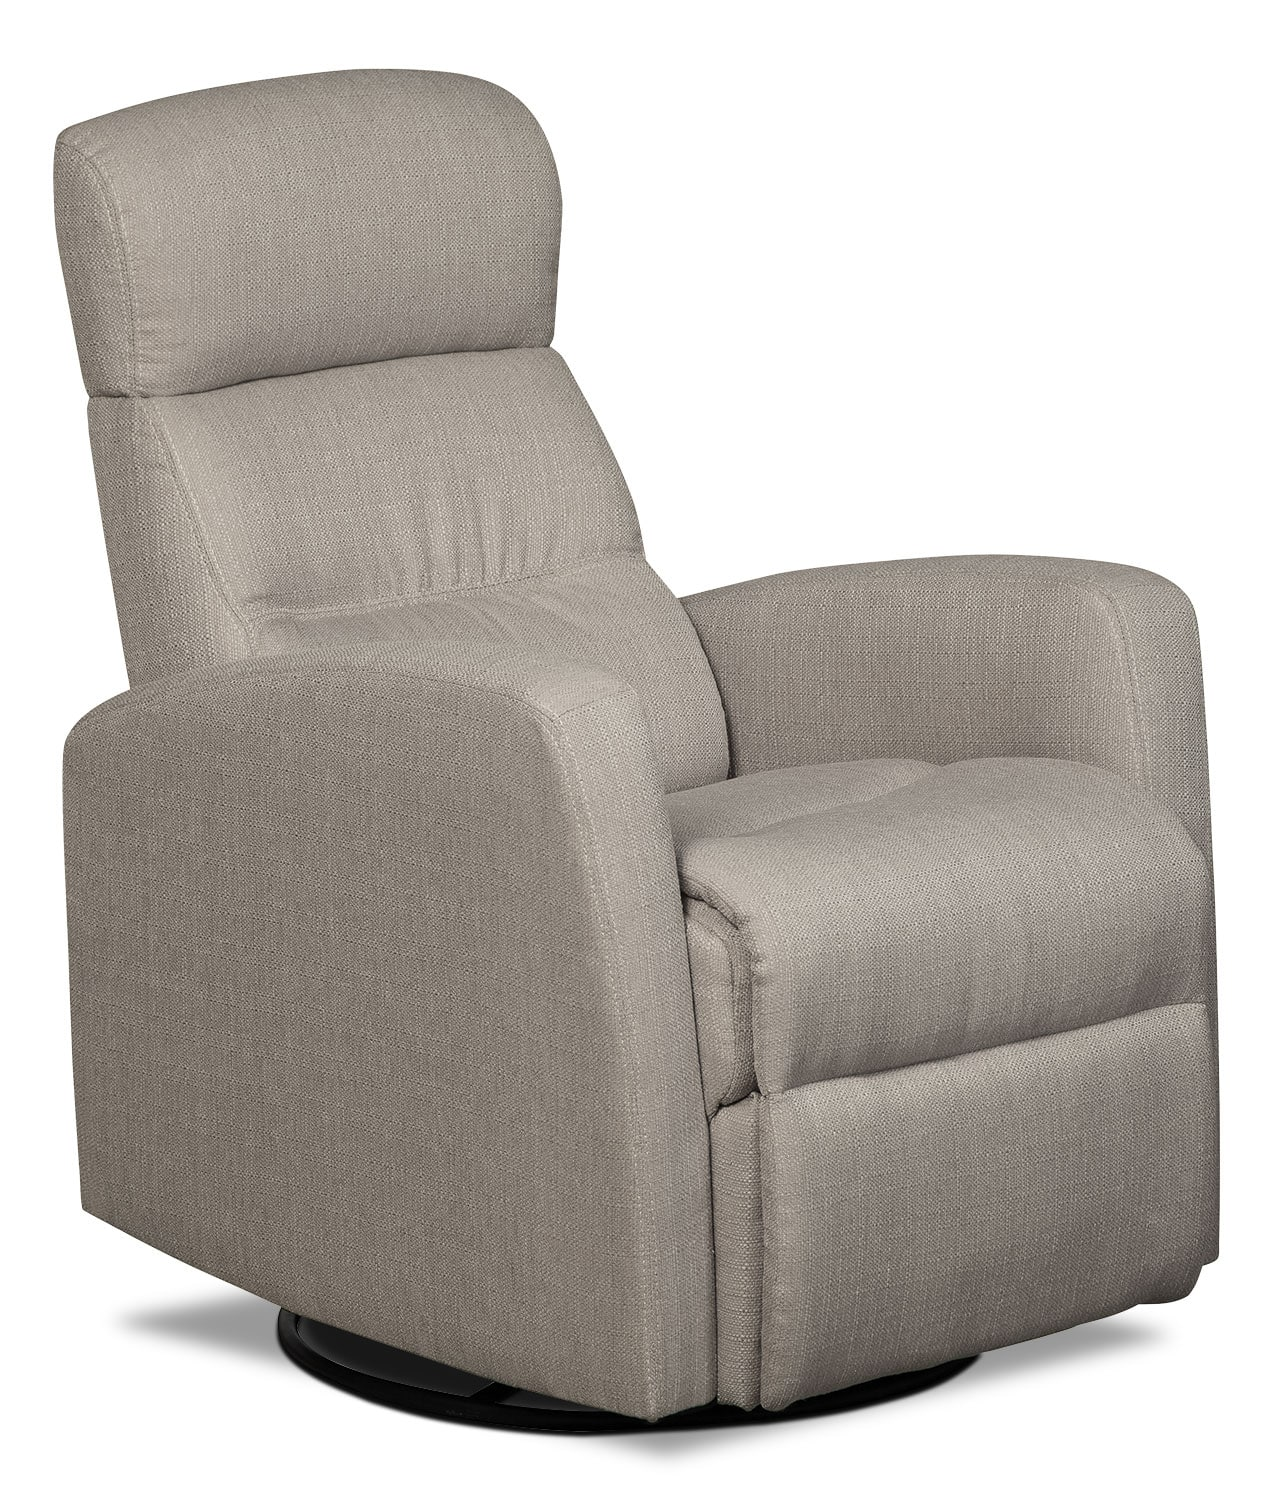 Reclining Rocking Chair Penny Linen Look Fabric Swivel Rocker Reclining Chair